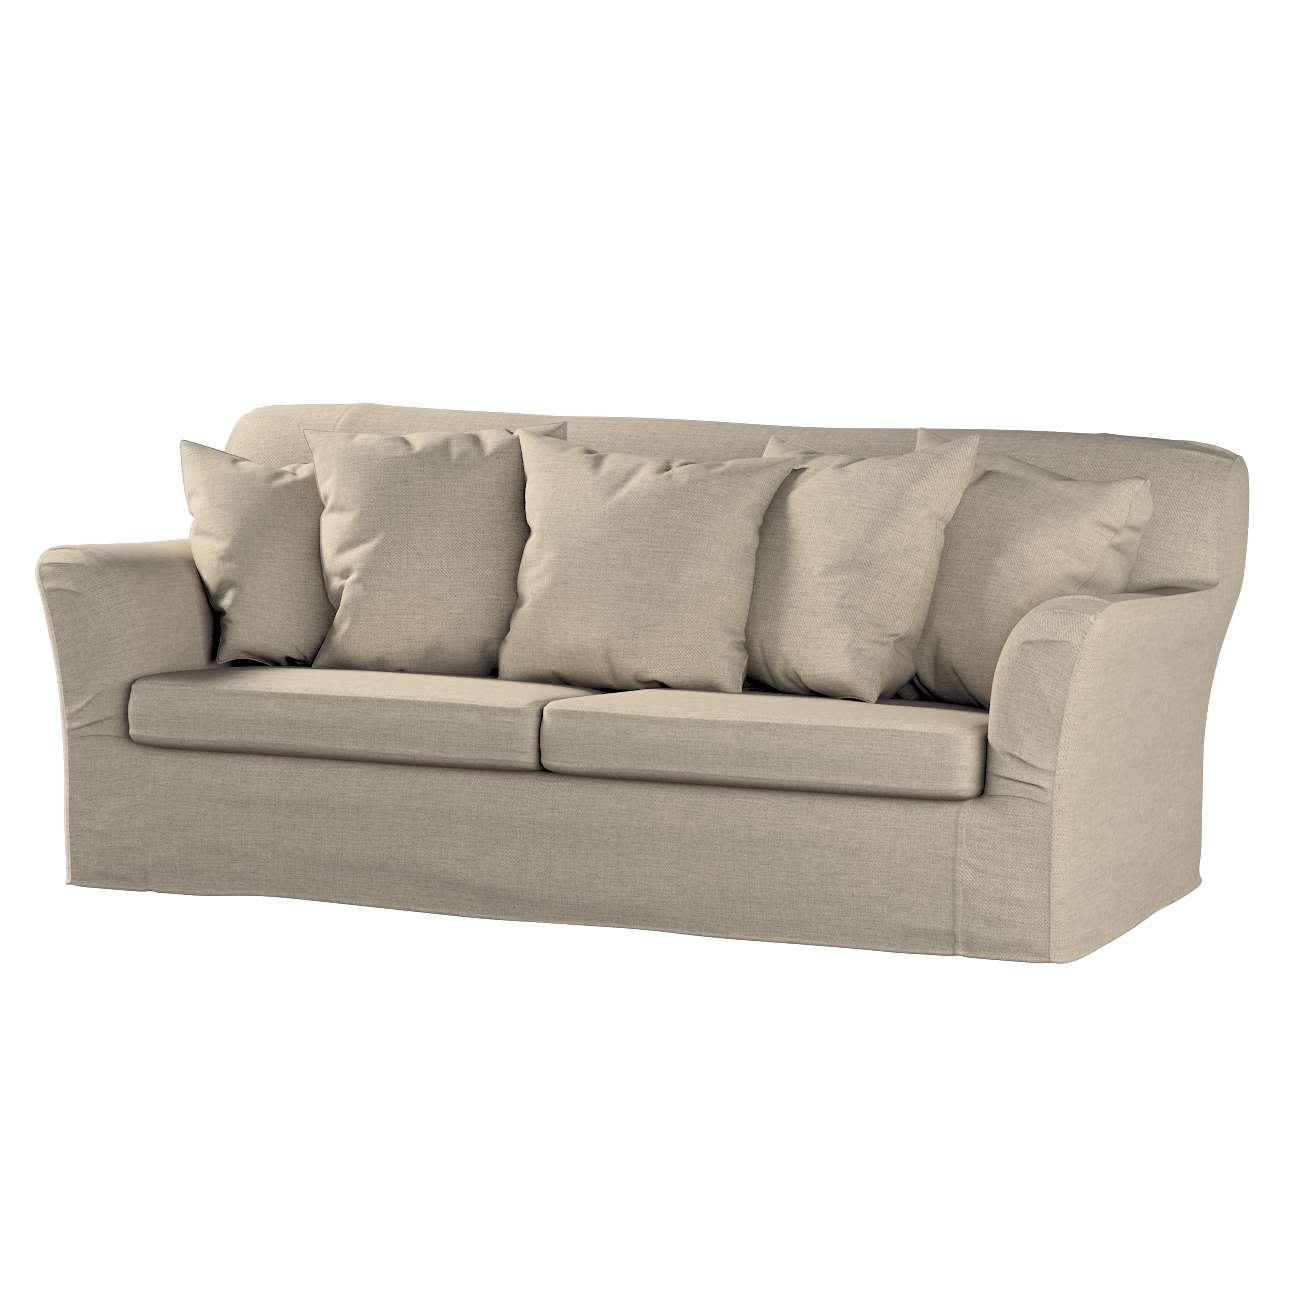 Tomelilla sofa bed cover Tomelilla sofa bed in collection Living, fabric: 104-87